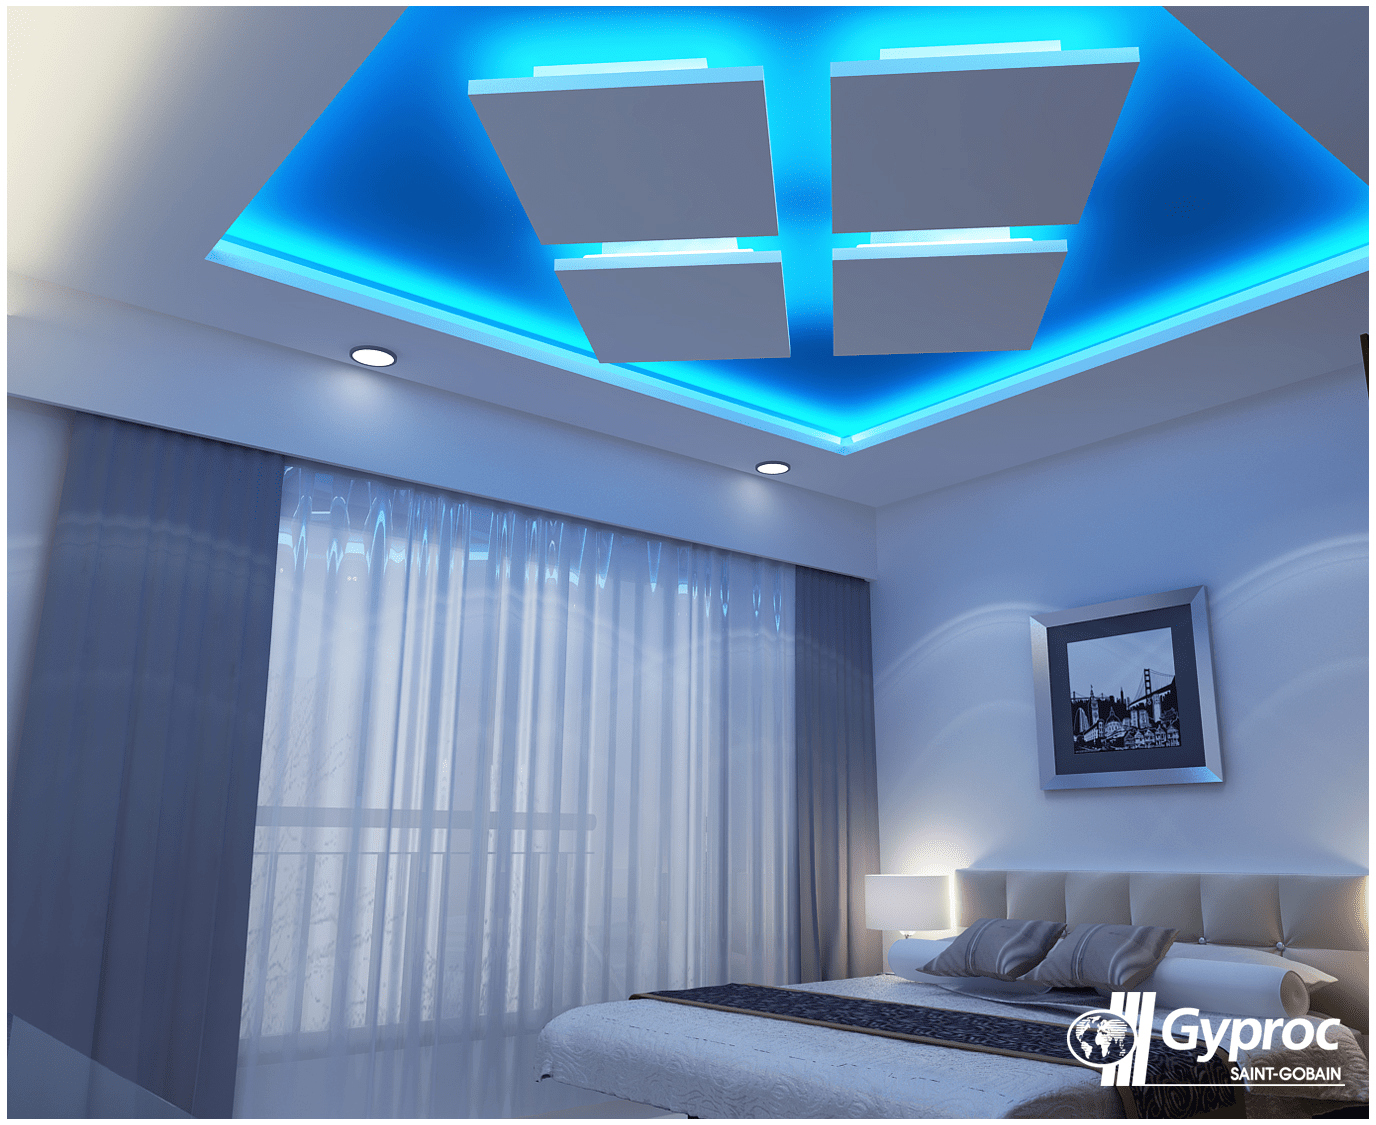 Ceiling Design For Small Room Brighten Your Bedroom With A Ceiling Like This One To